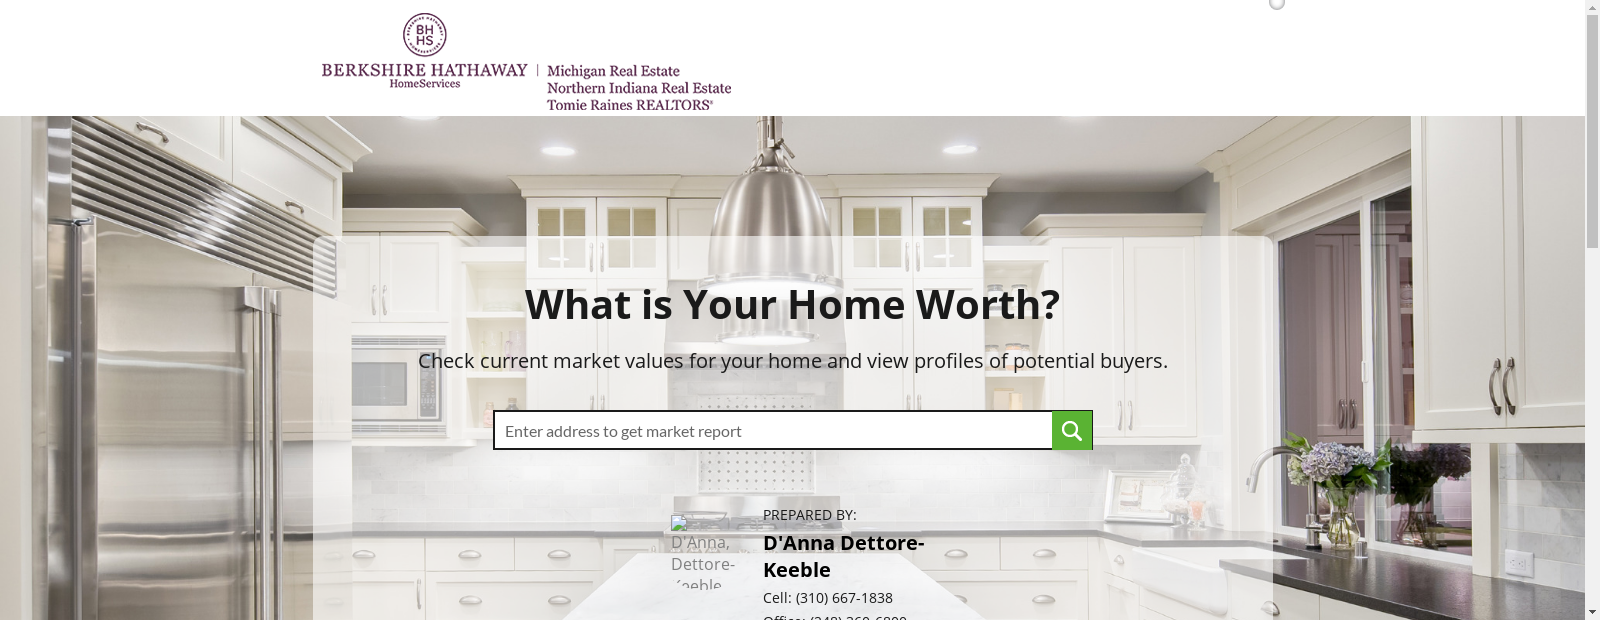 Home Value Estimator By D Anna Dettore Keeble Investment